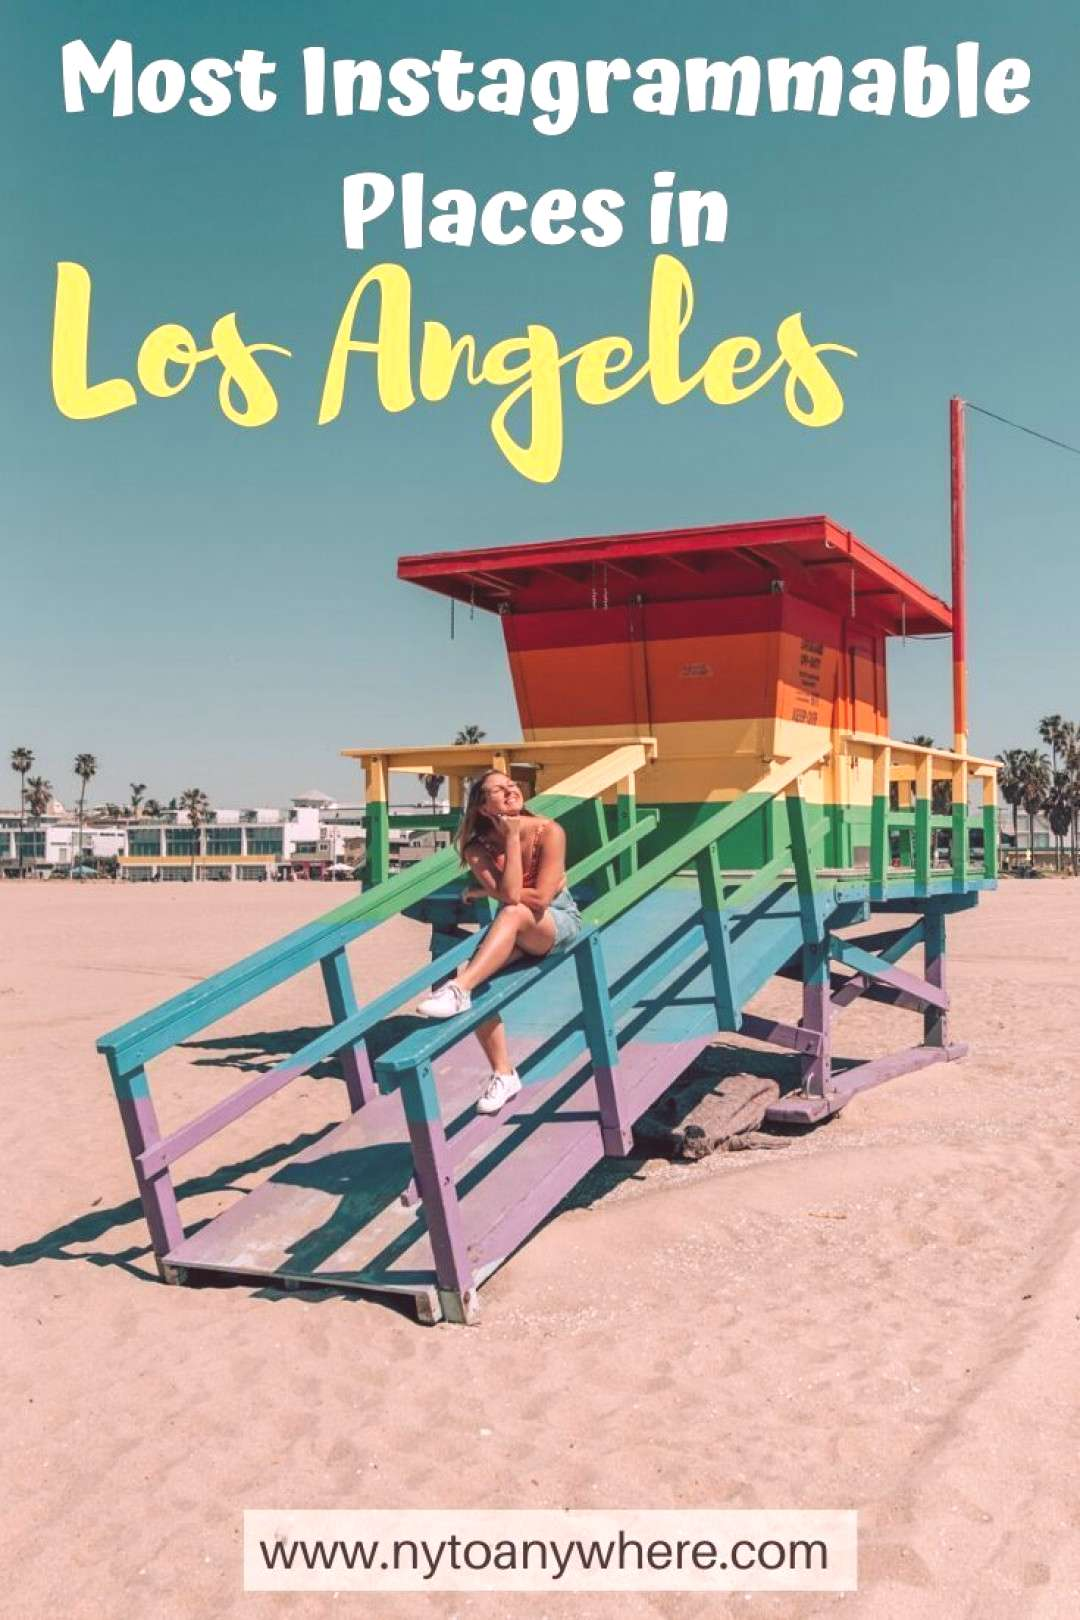 LA Photo spots » NY to Anywhere The Most Instagrammable Places in LA // Santa Monica // Venice Bea